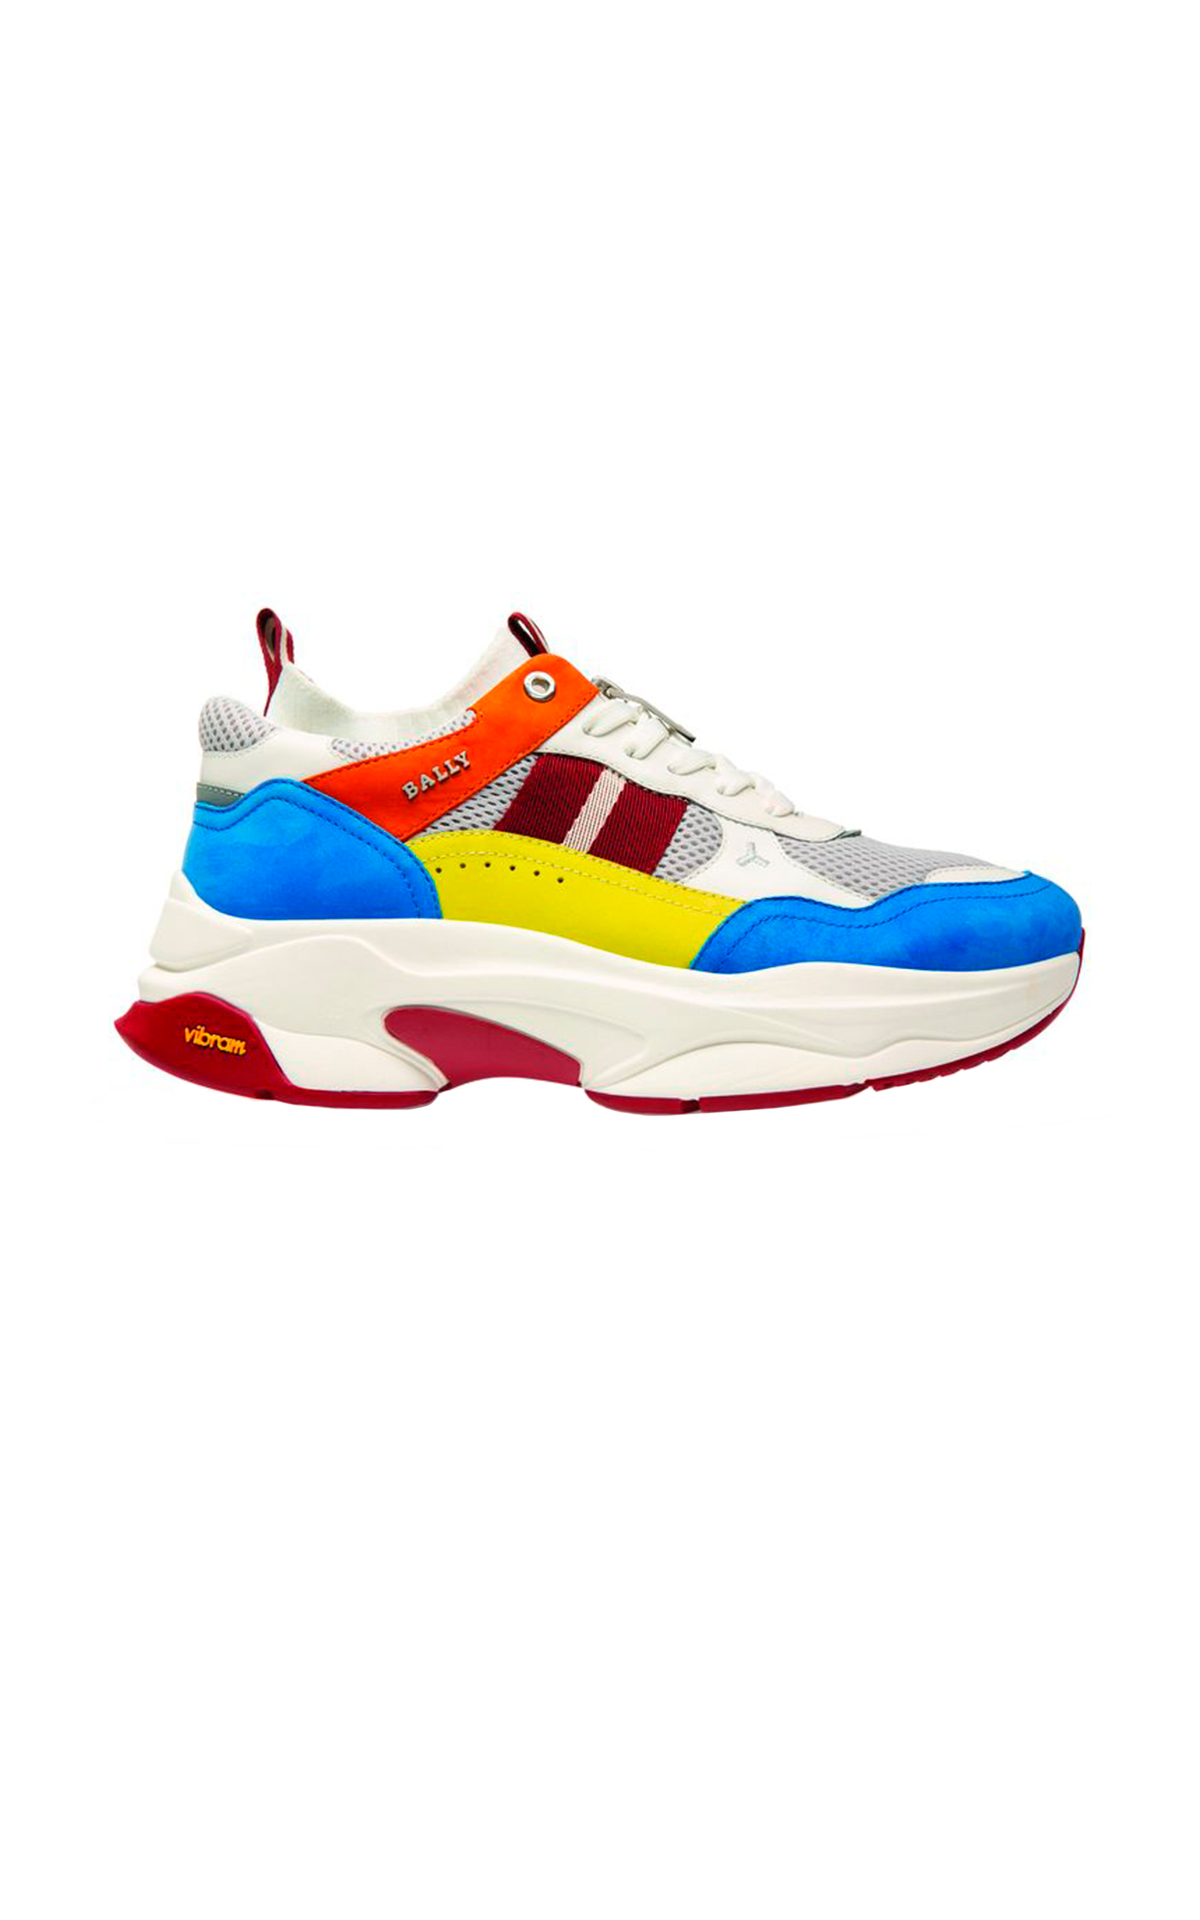 Colorful sneakers Bally